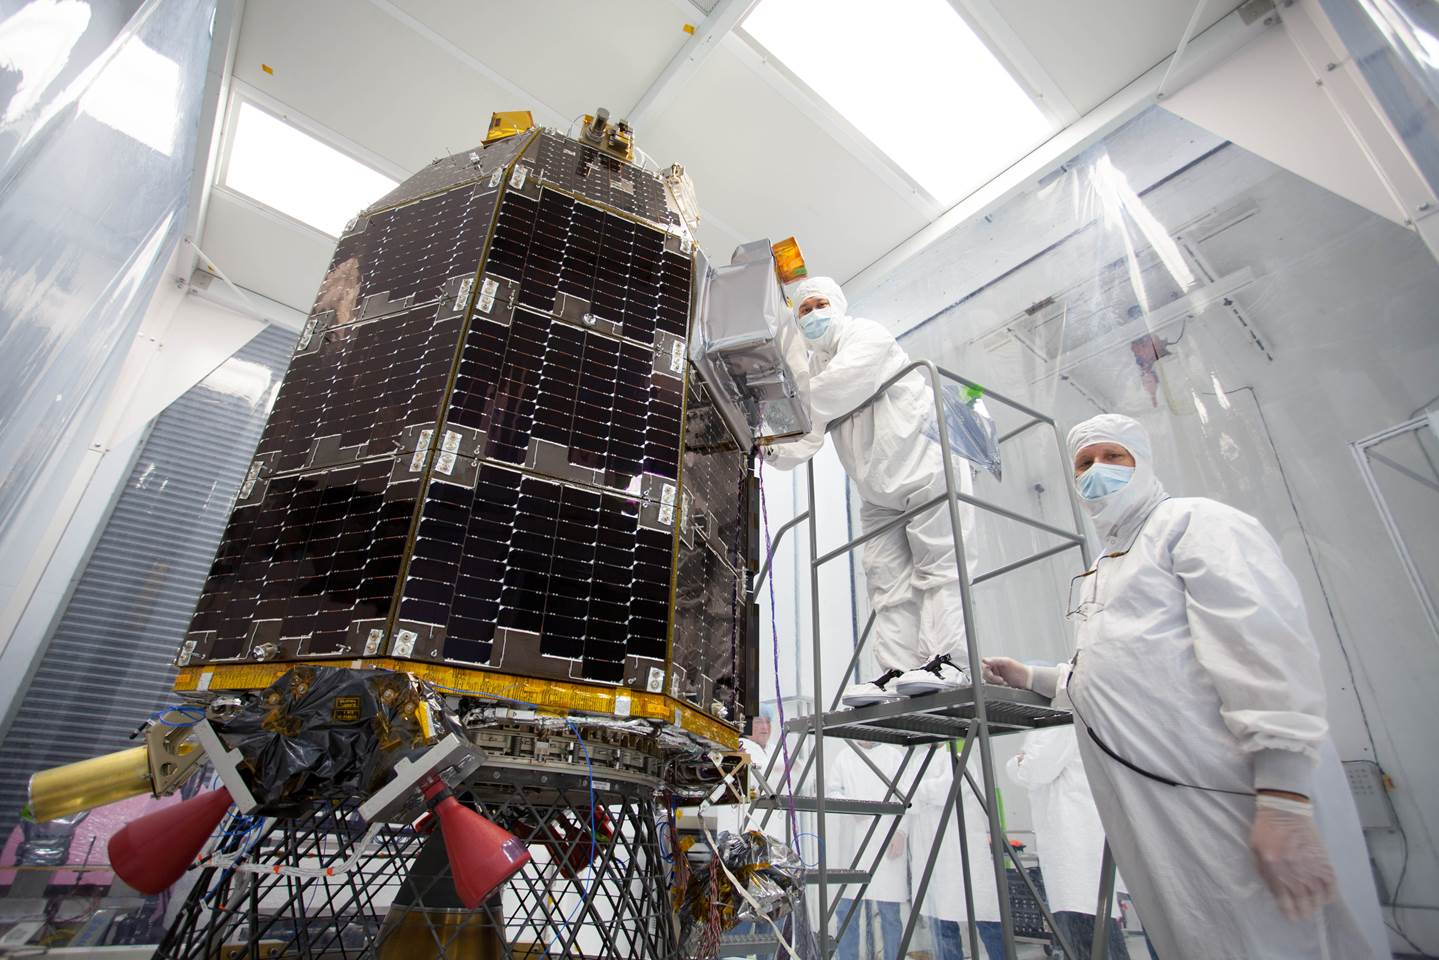 A Lunar Sunrise: LADEE Scientific Mission Profile ...